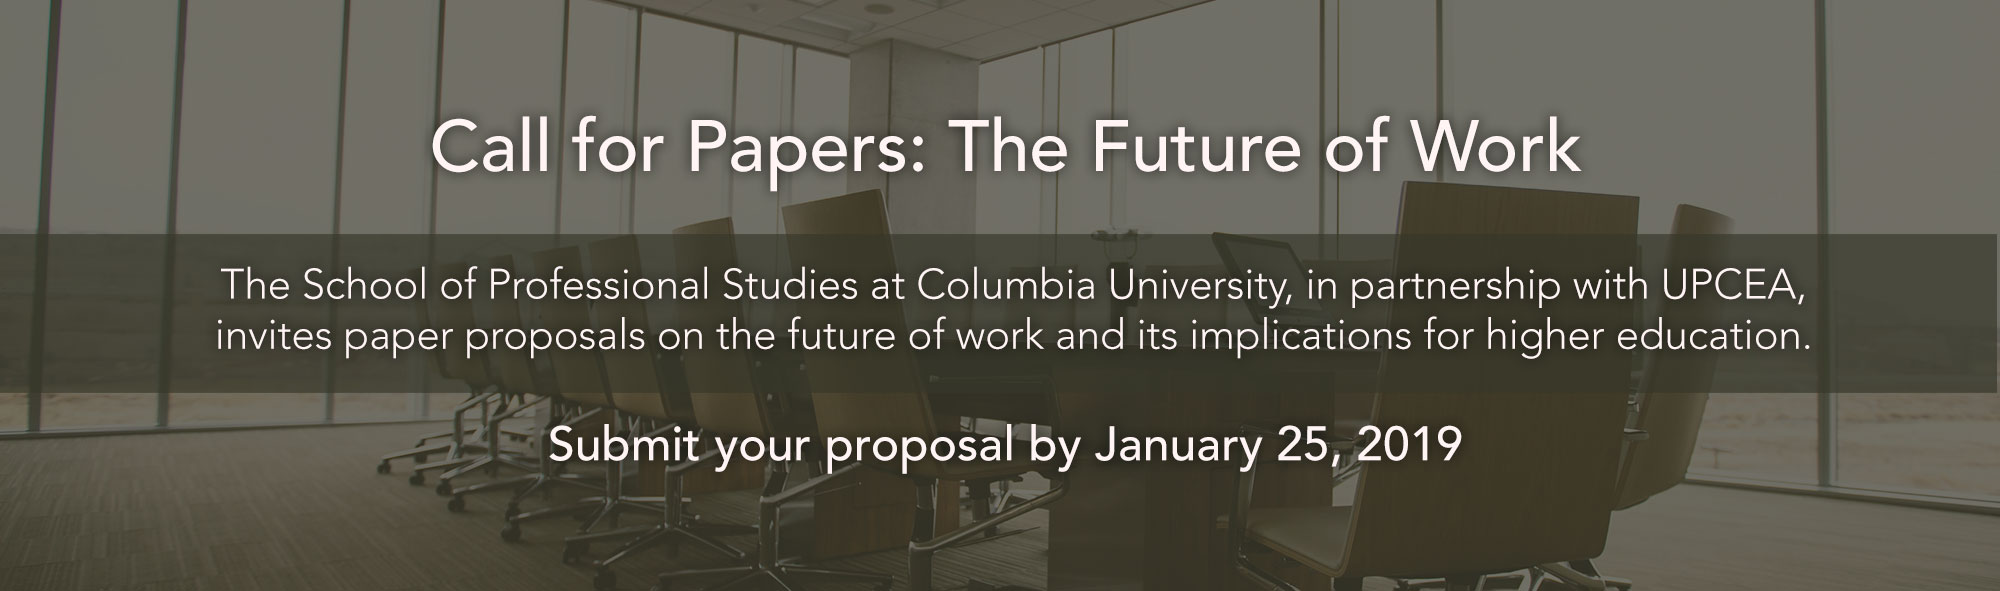 2019 Call for Papers The Future of Work